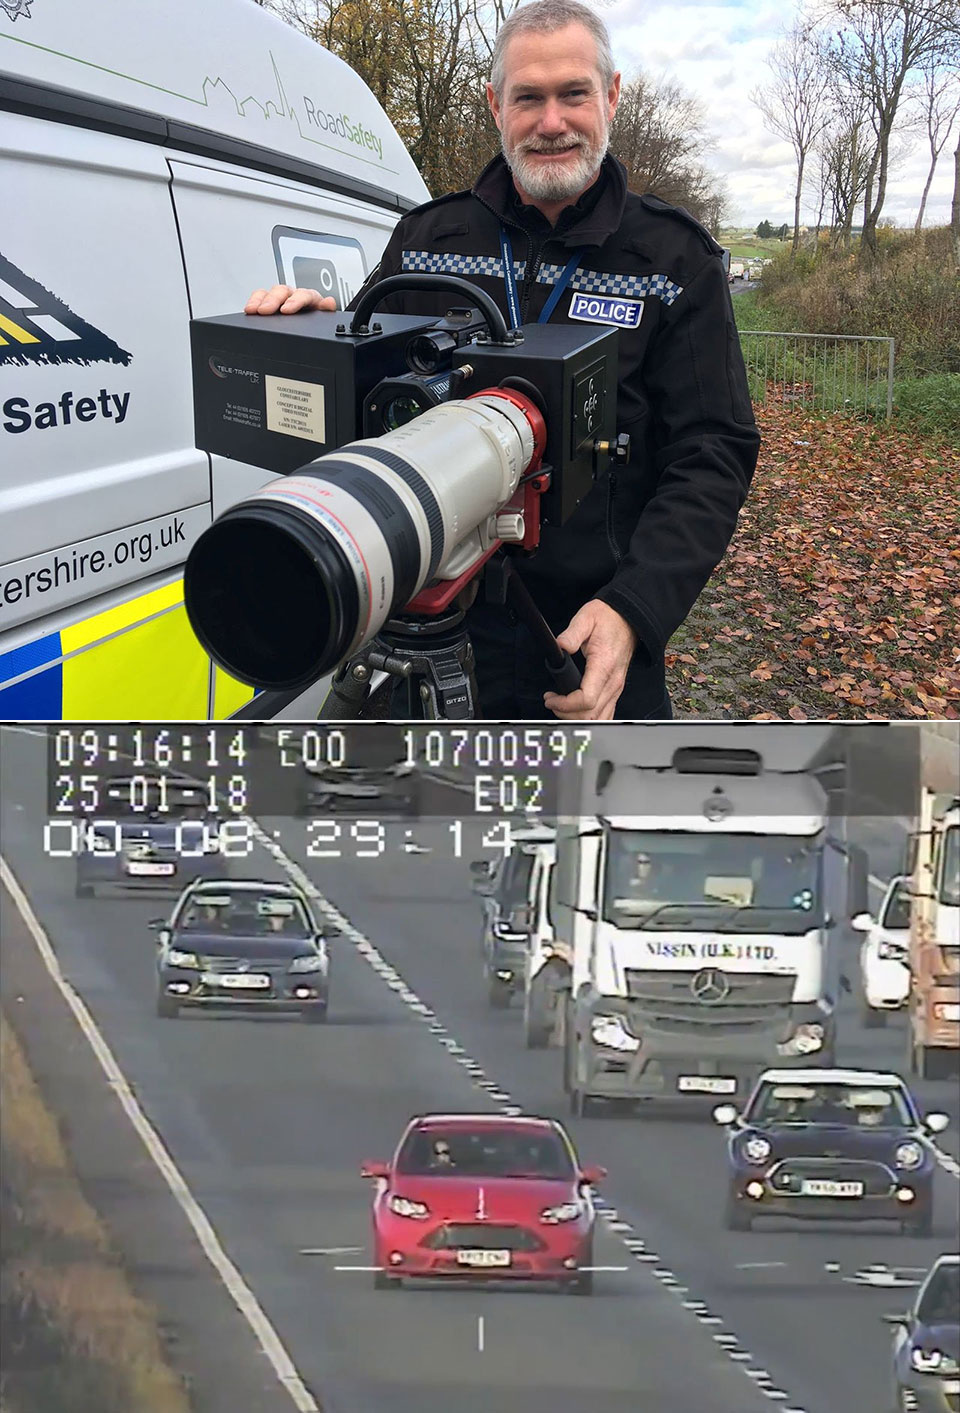 A417 Britain's Biggest Speed Camera